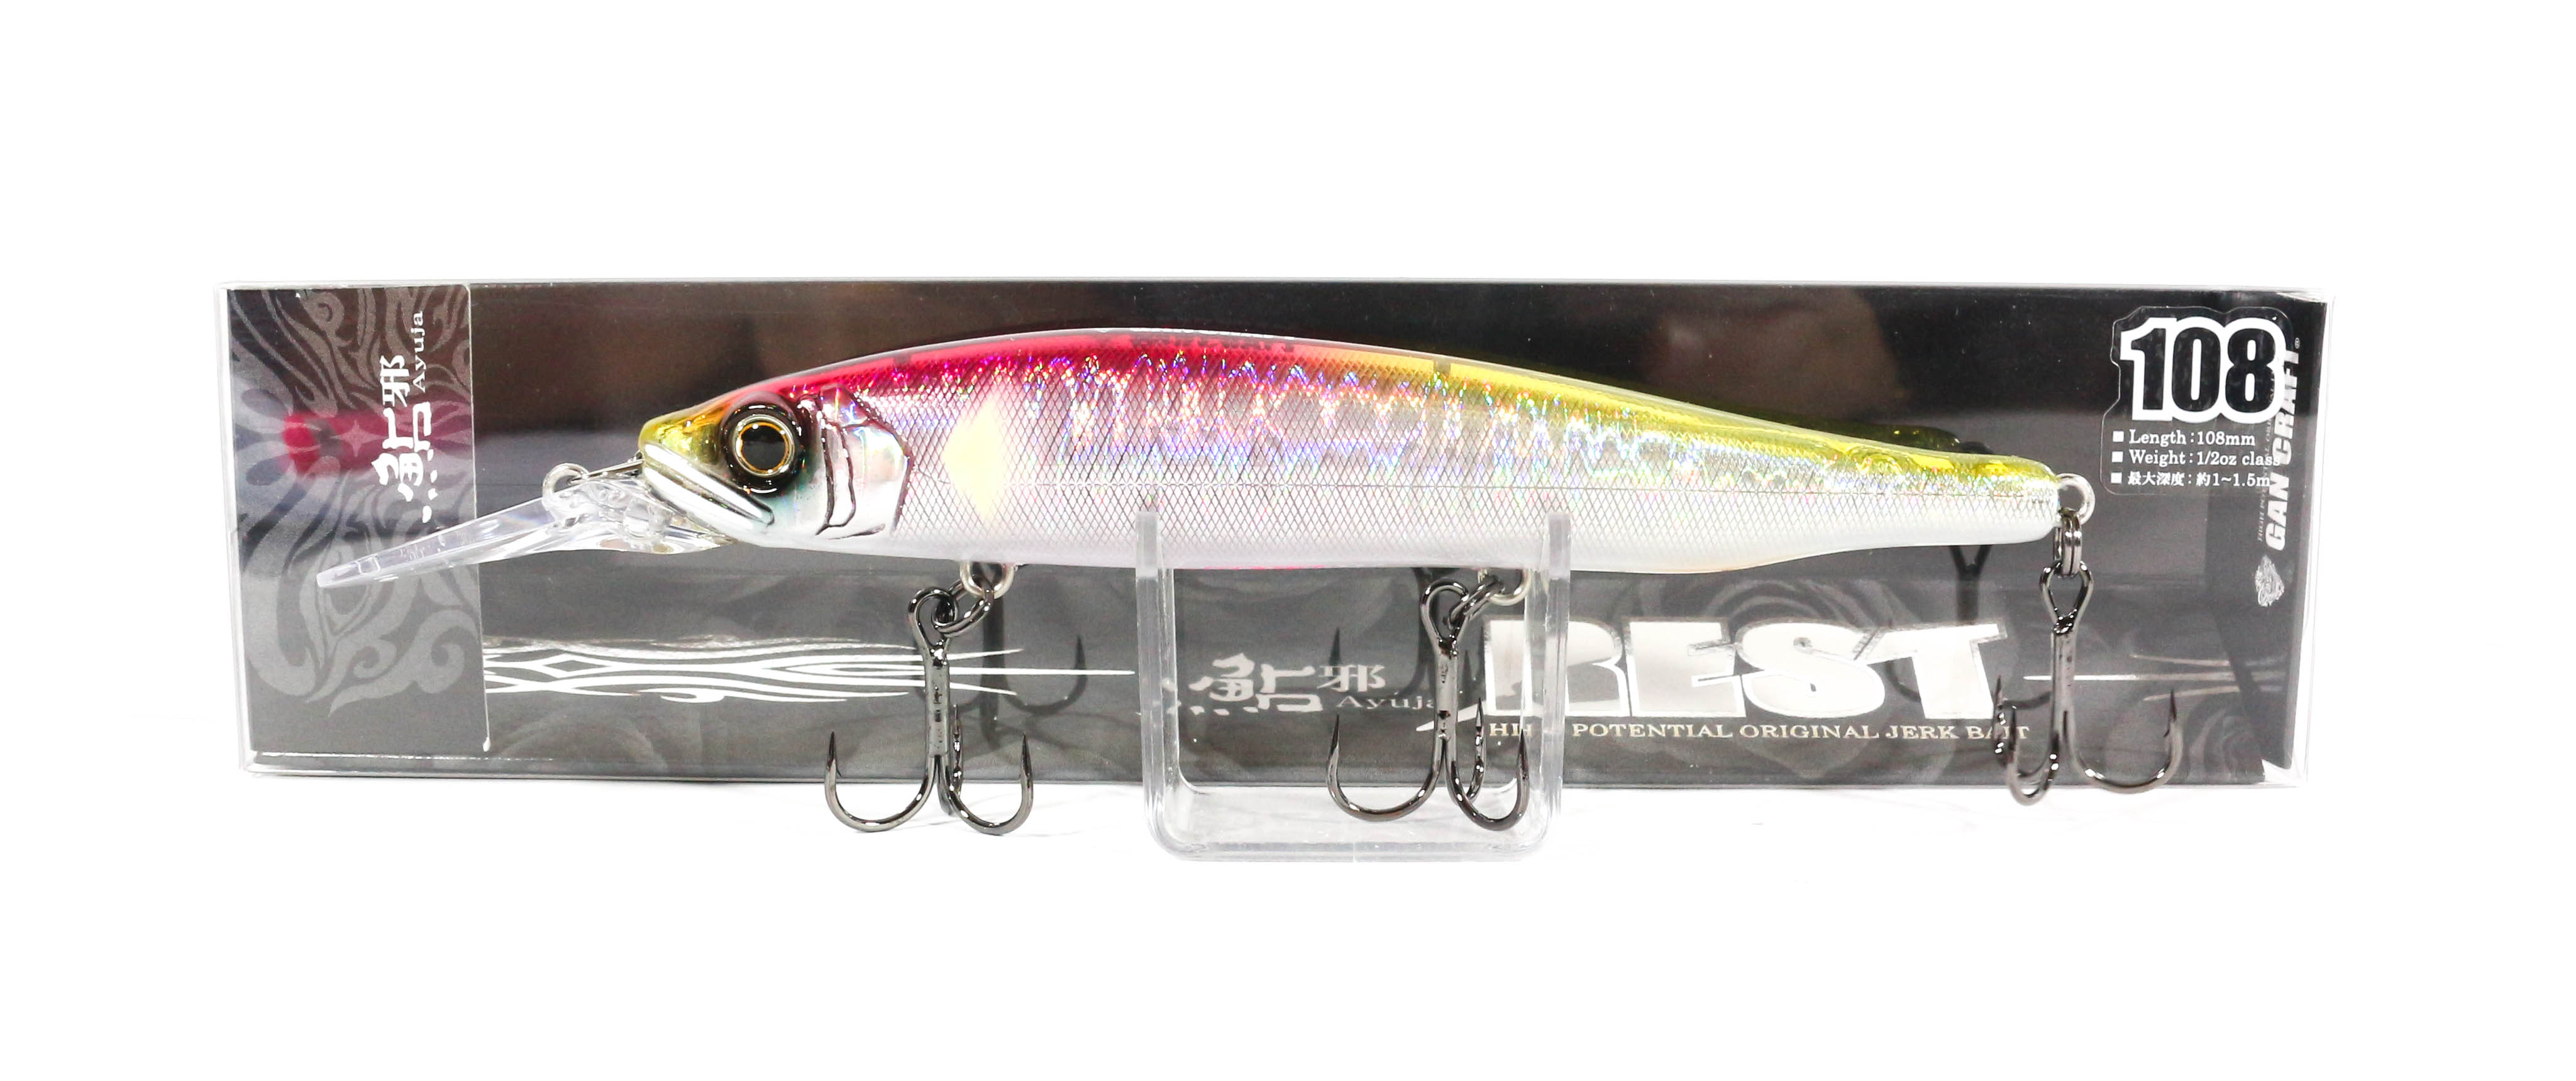 Gan Craft Ayuja Rest 108 Slow Floating Lure 10 (8022)